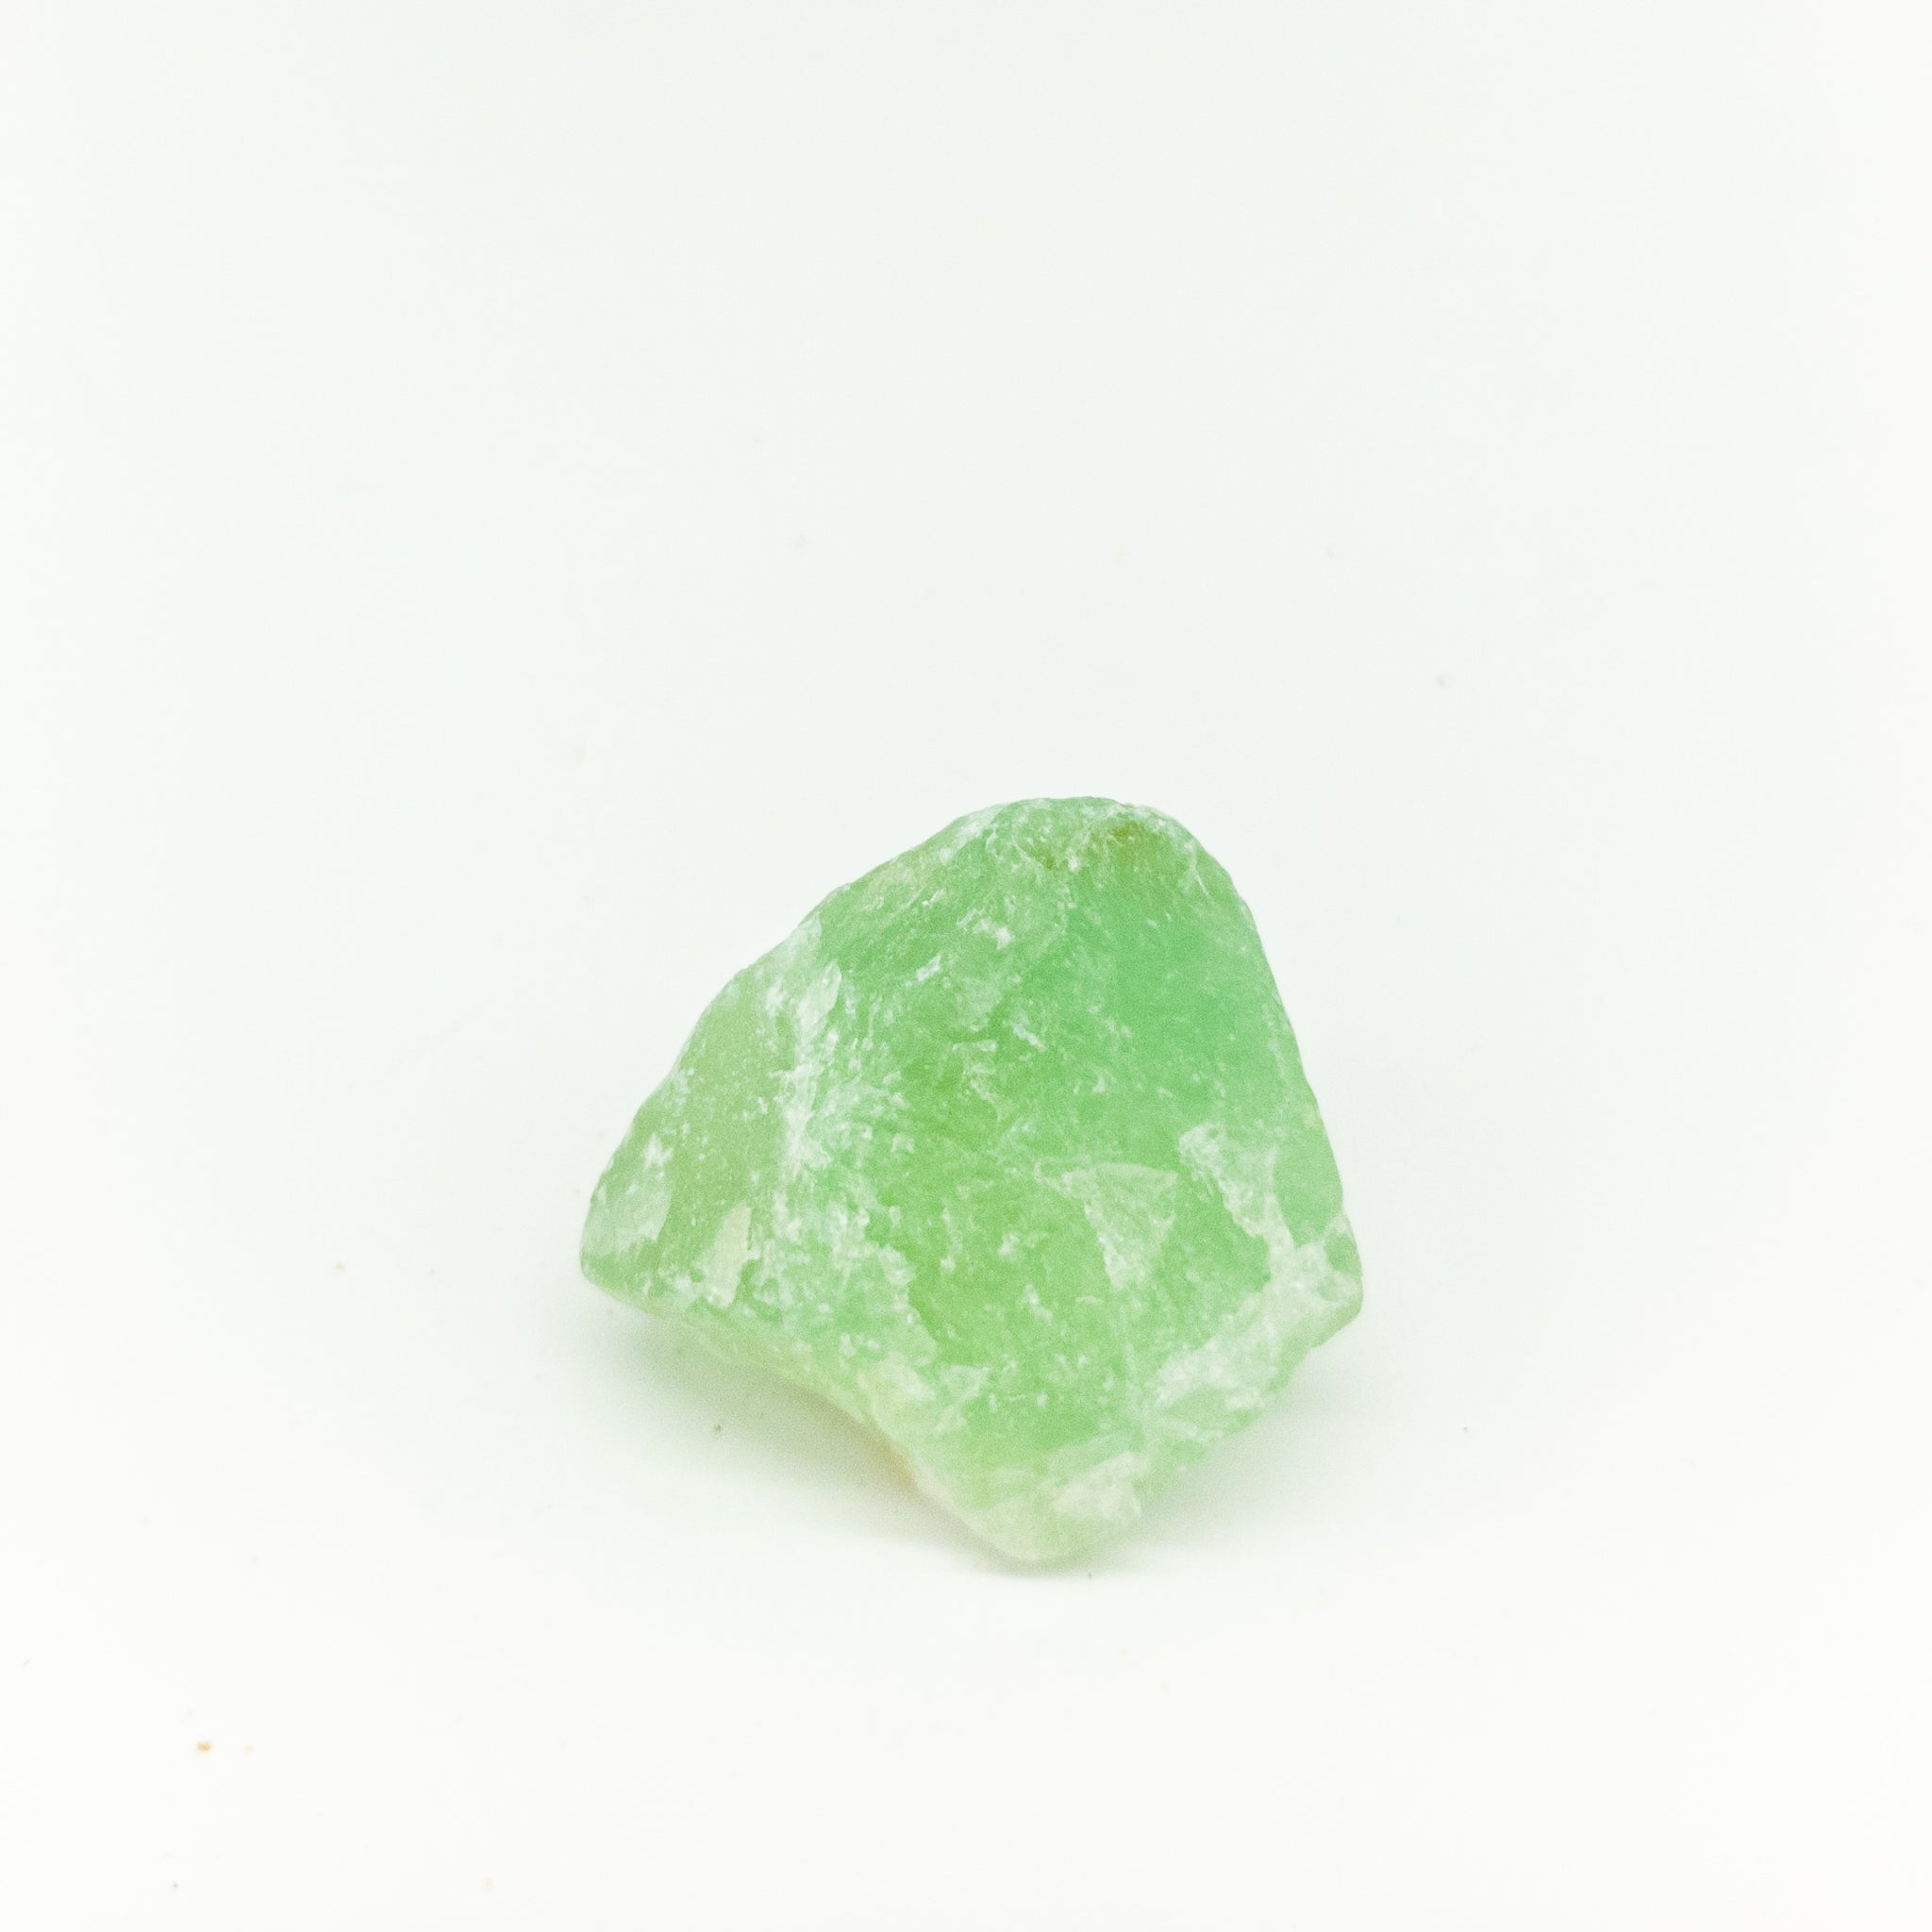 NEW! Small Green Fluorite chunks